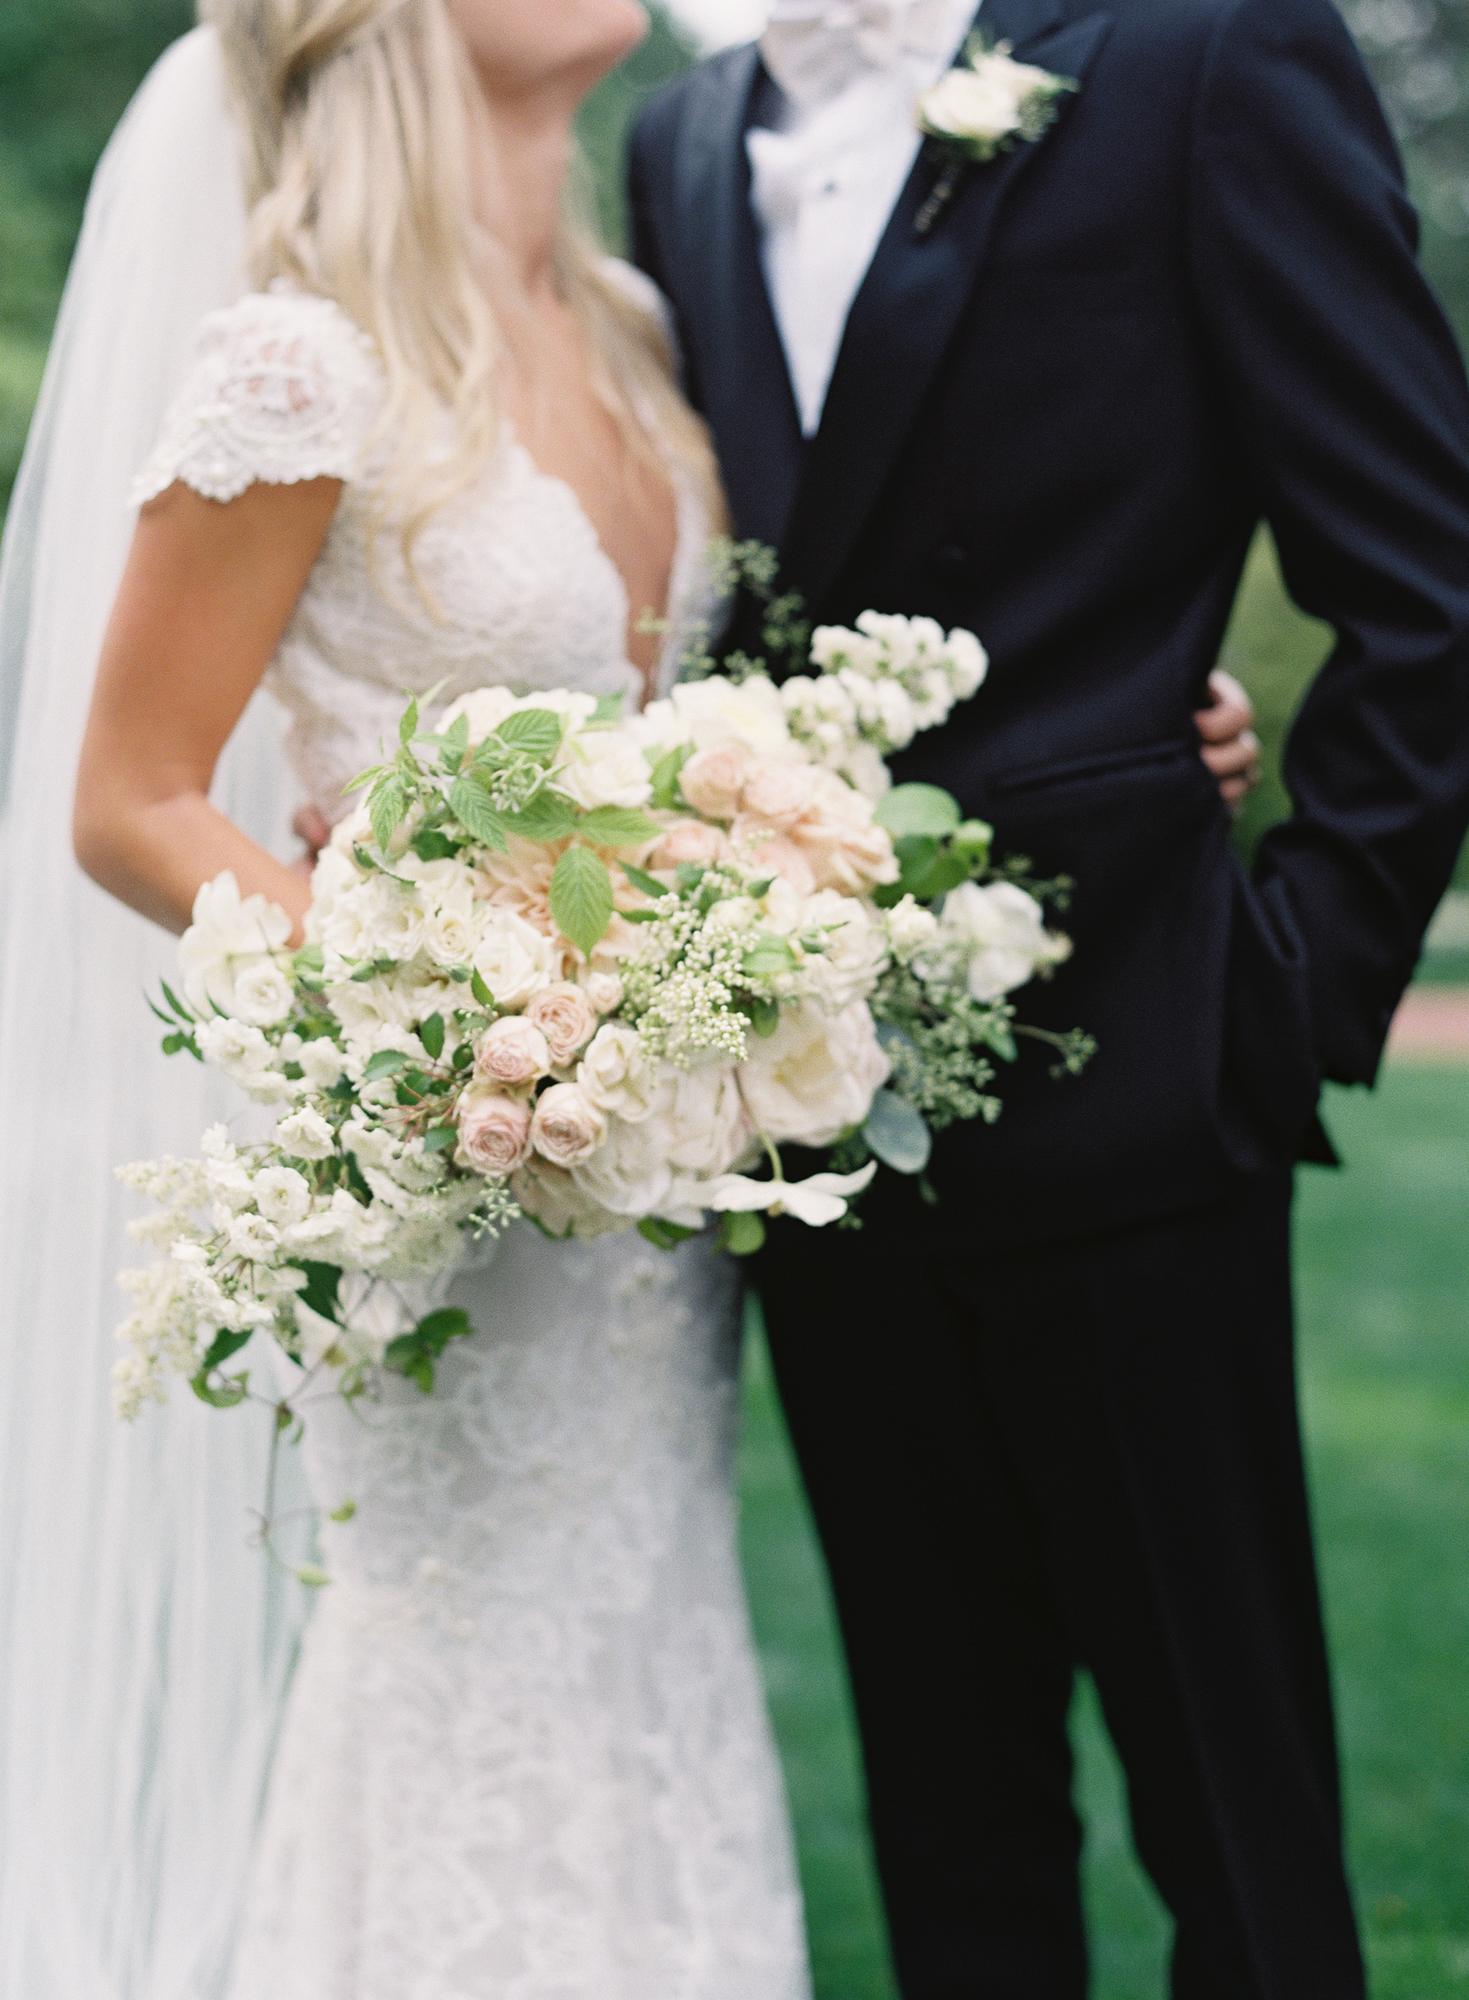 Bridal bouquet in garden style with ivory roses, peonies, and fairy roses, with accents of greenery